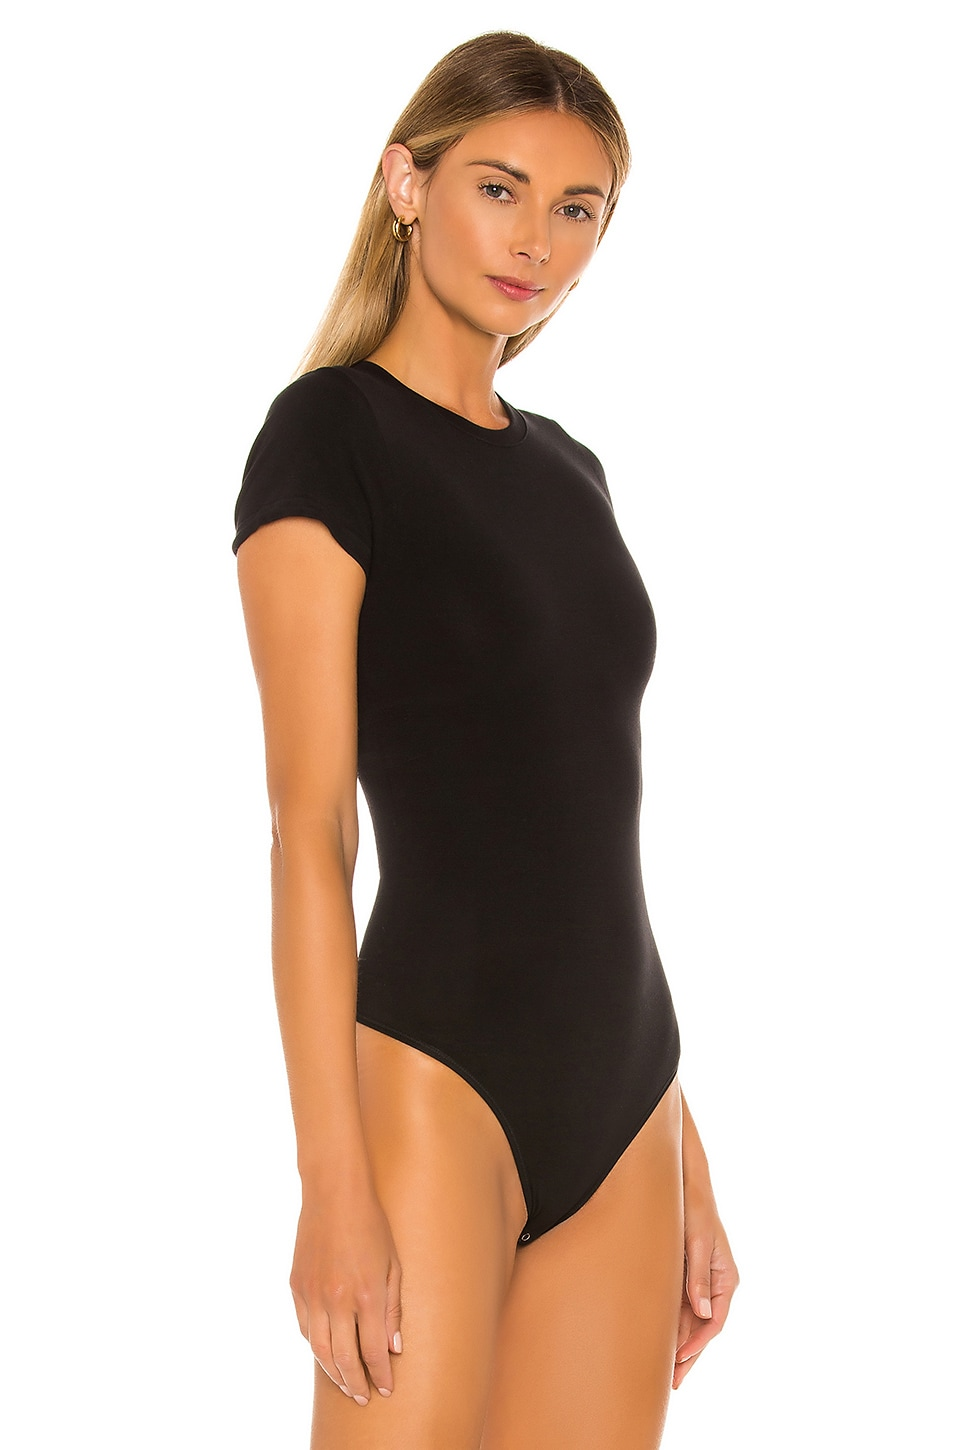 Short Sleeve Bodysuit, view 3, click to view large image.